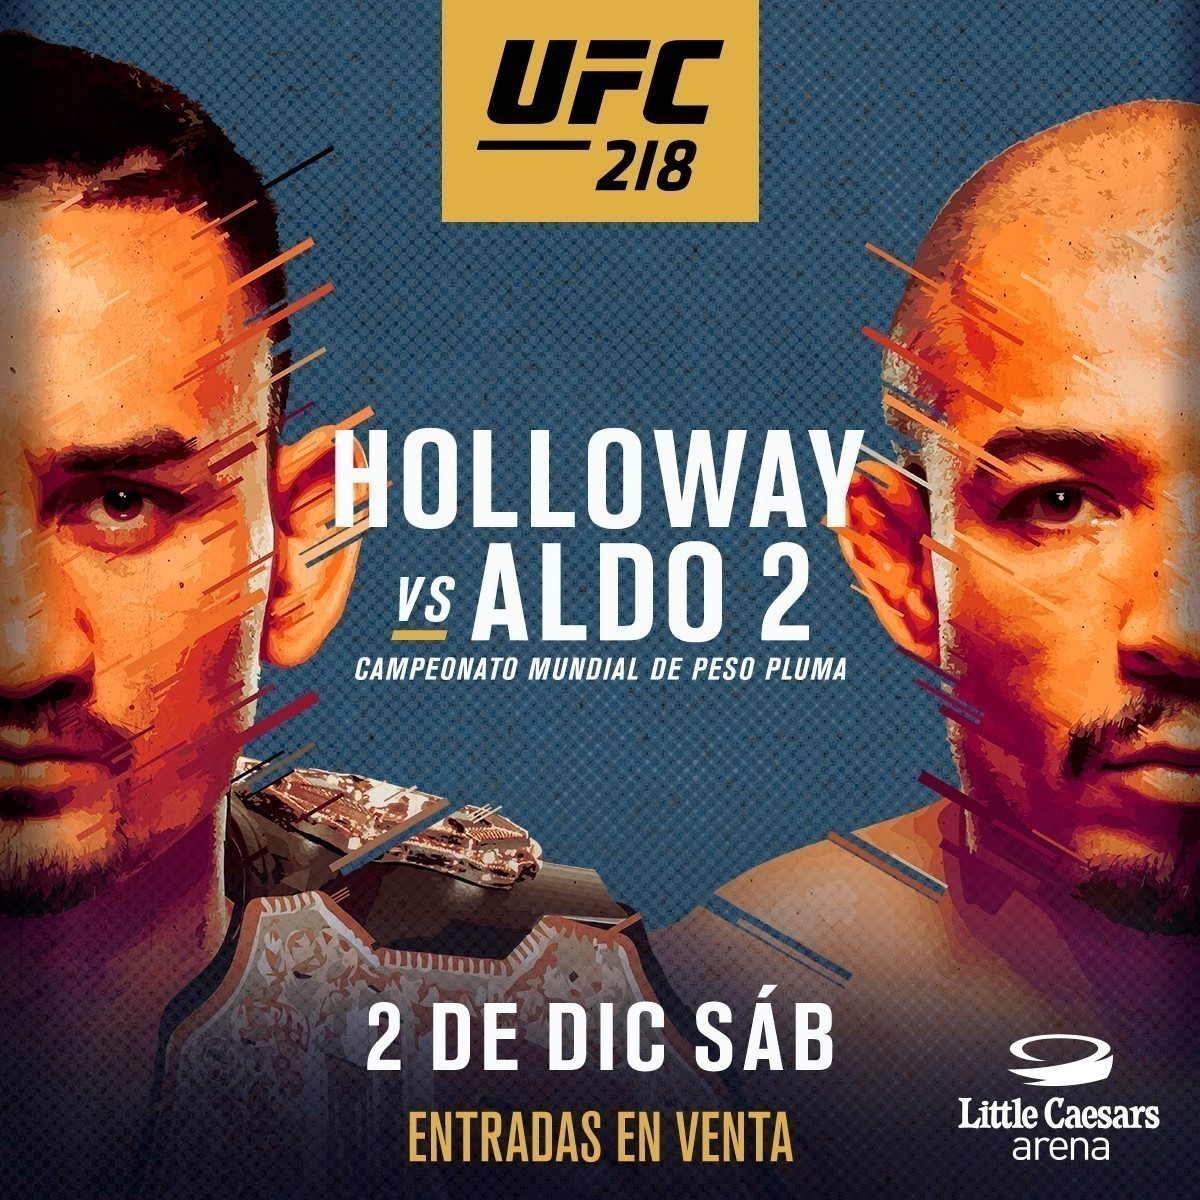 ufc-218-holloway-vs-aldo-2-ESP.0